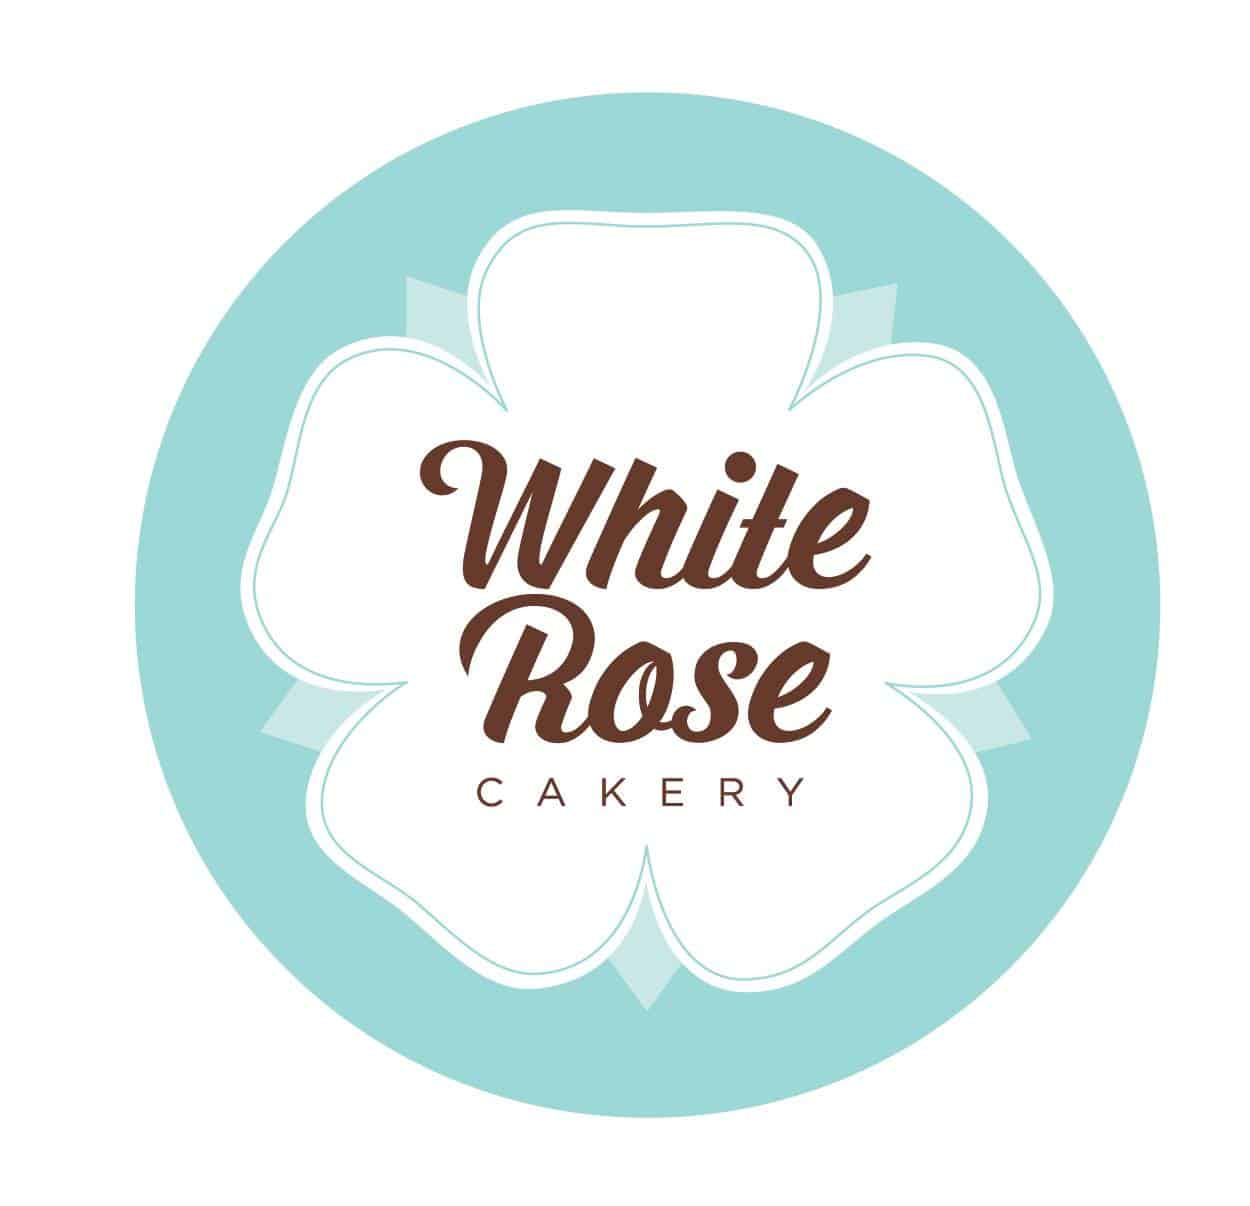 white rose cakery logo